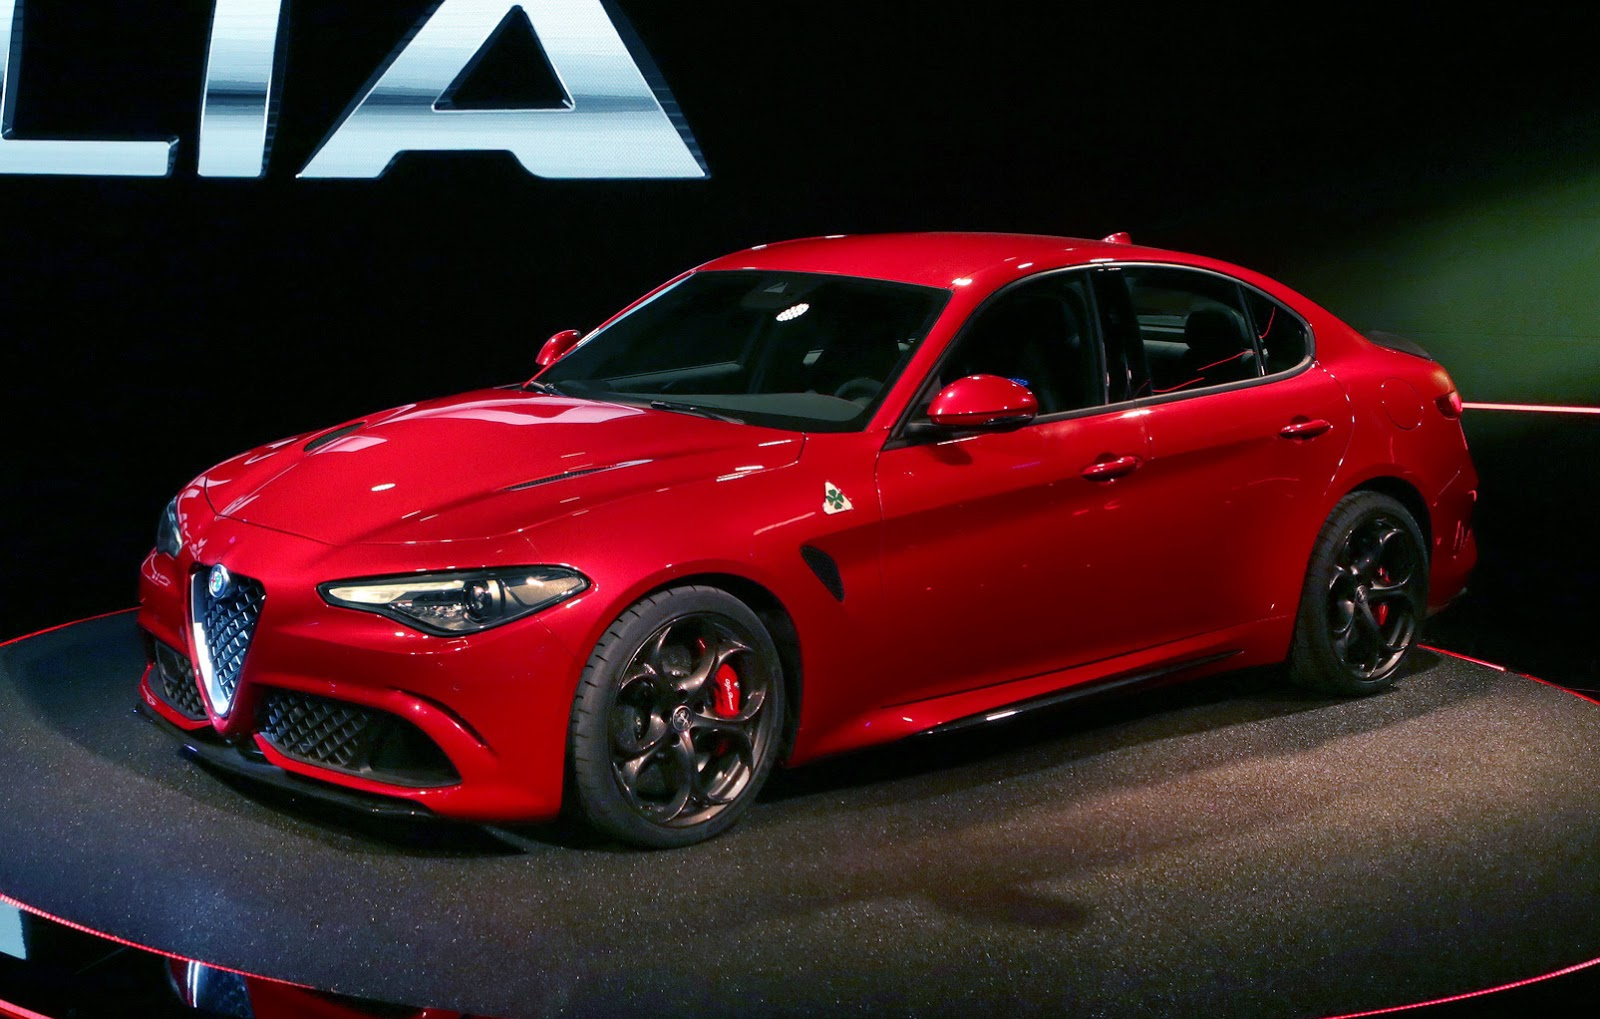 alfa romeo giulia quadrifoglio 2016 alfa romeo autopareri. Black Bedroom Furniture Sets. Home Design Ideas